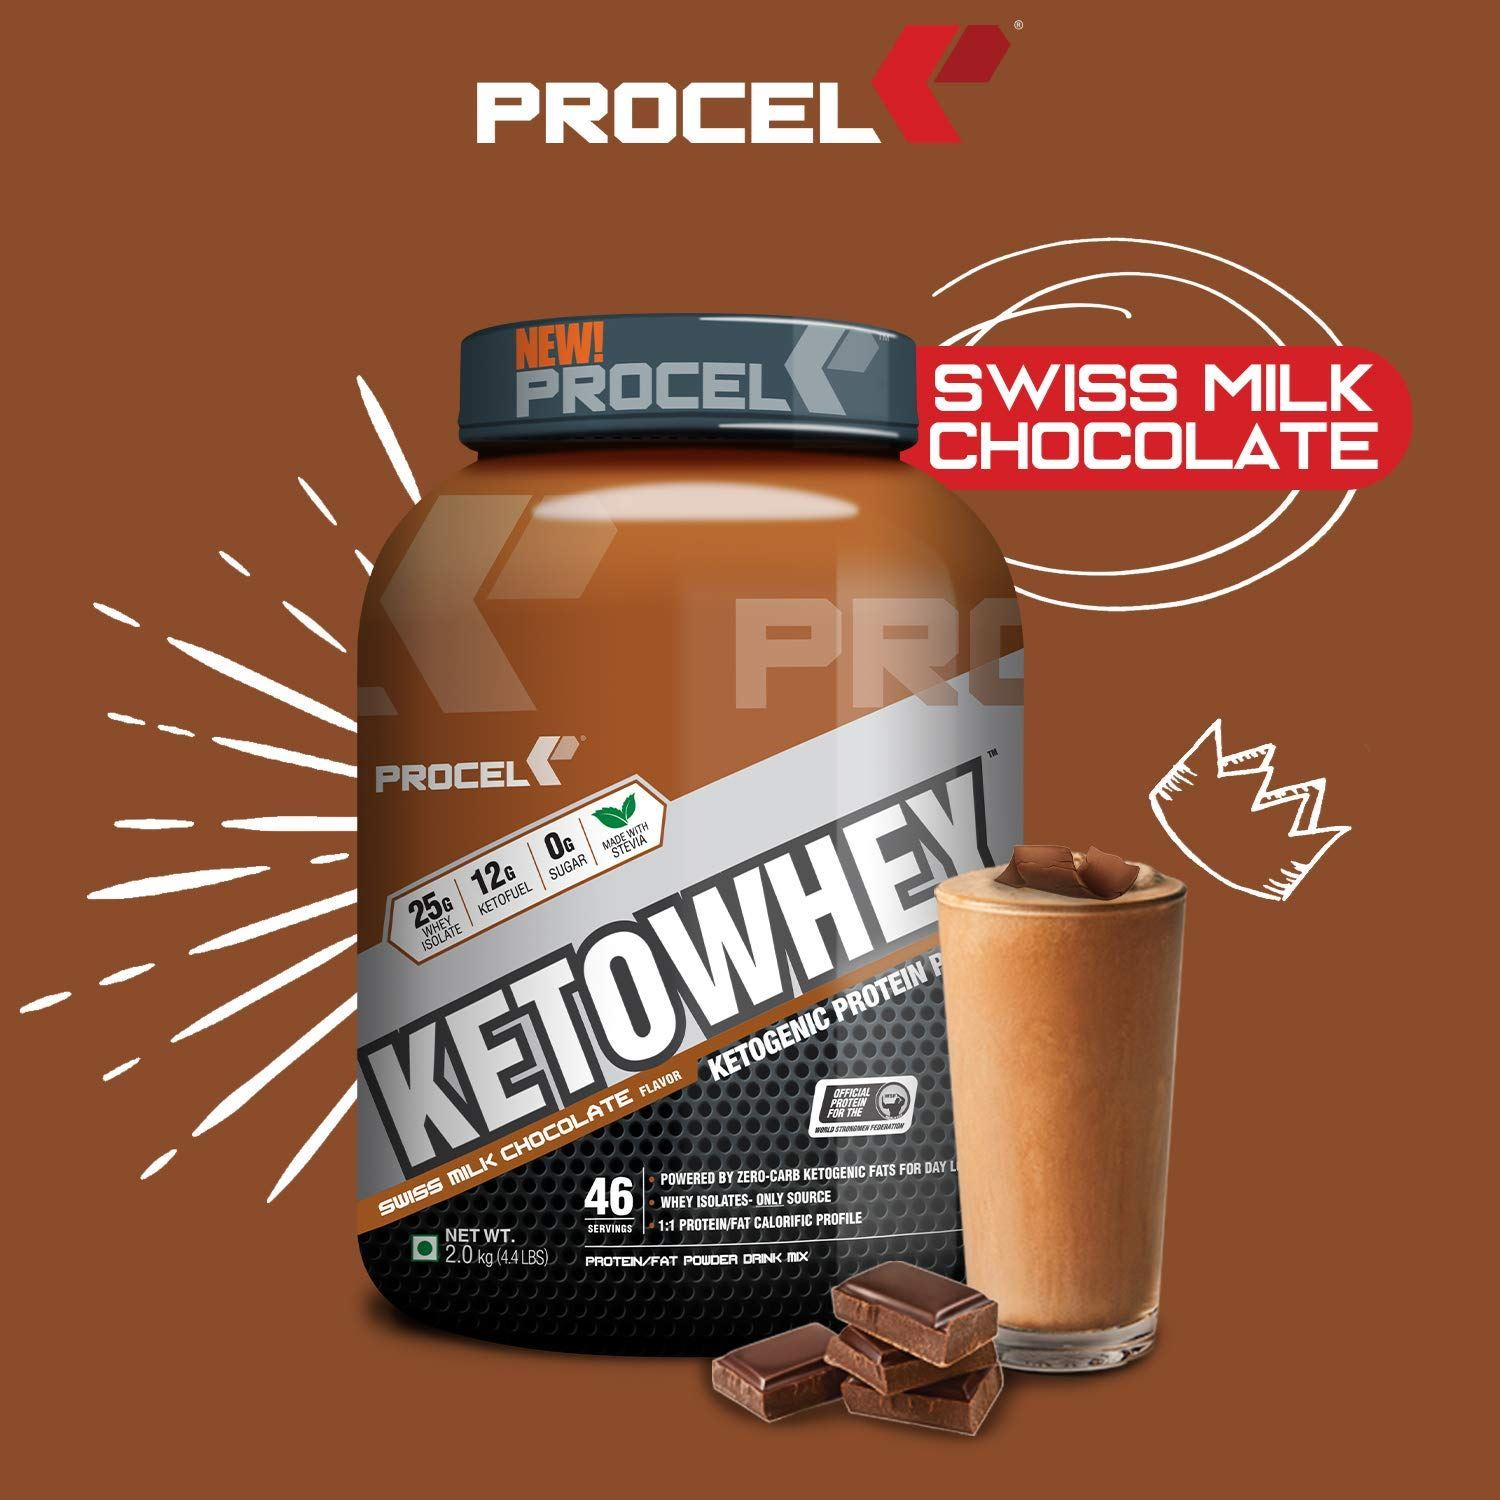 Picture of PROCEL KETOWHEY® Ketogenic Protein Powder with Ketofuel® 200g Trial Pack (Swiss Milk Chocolate) (Short Shelf Life)